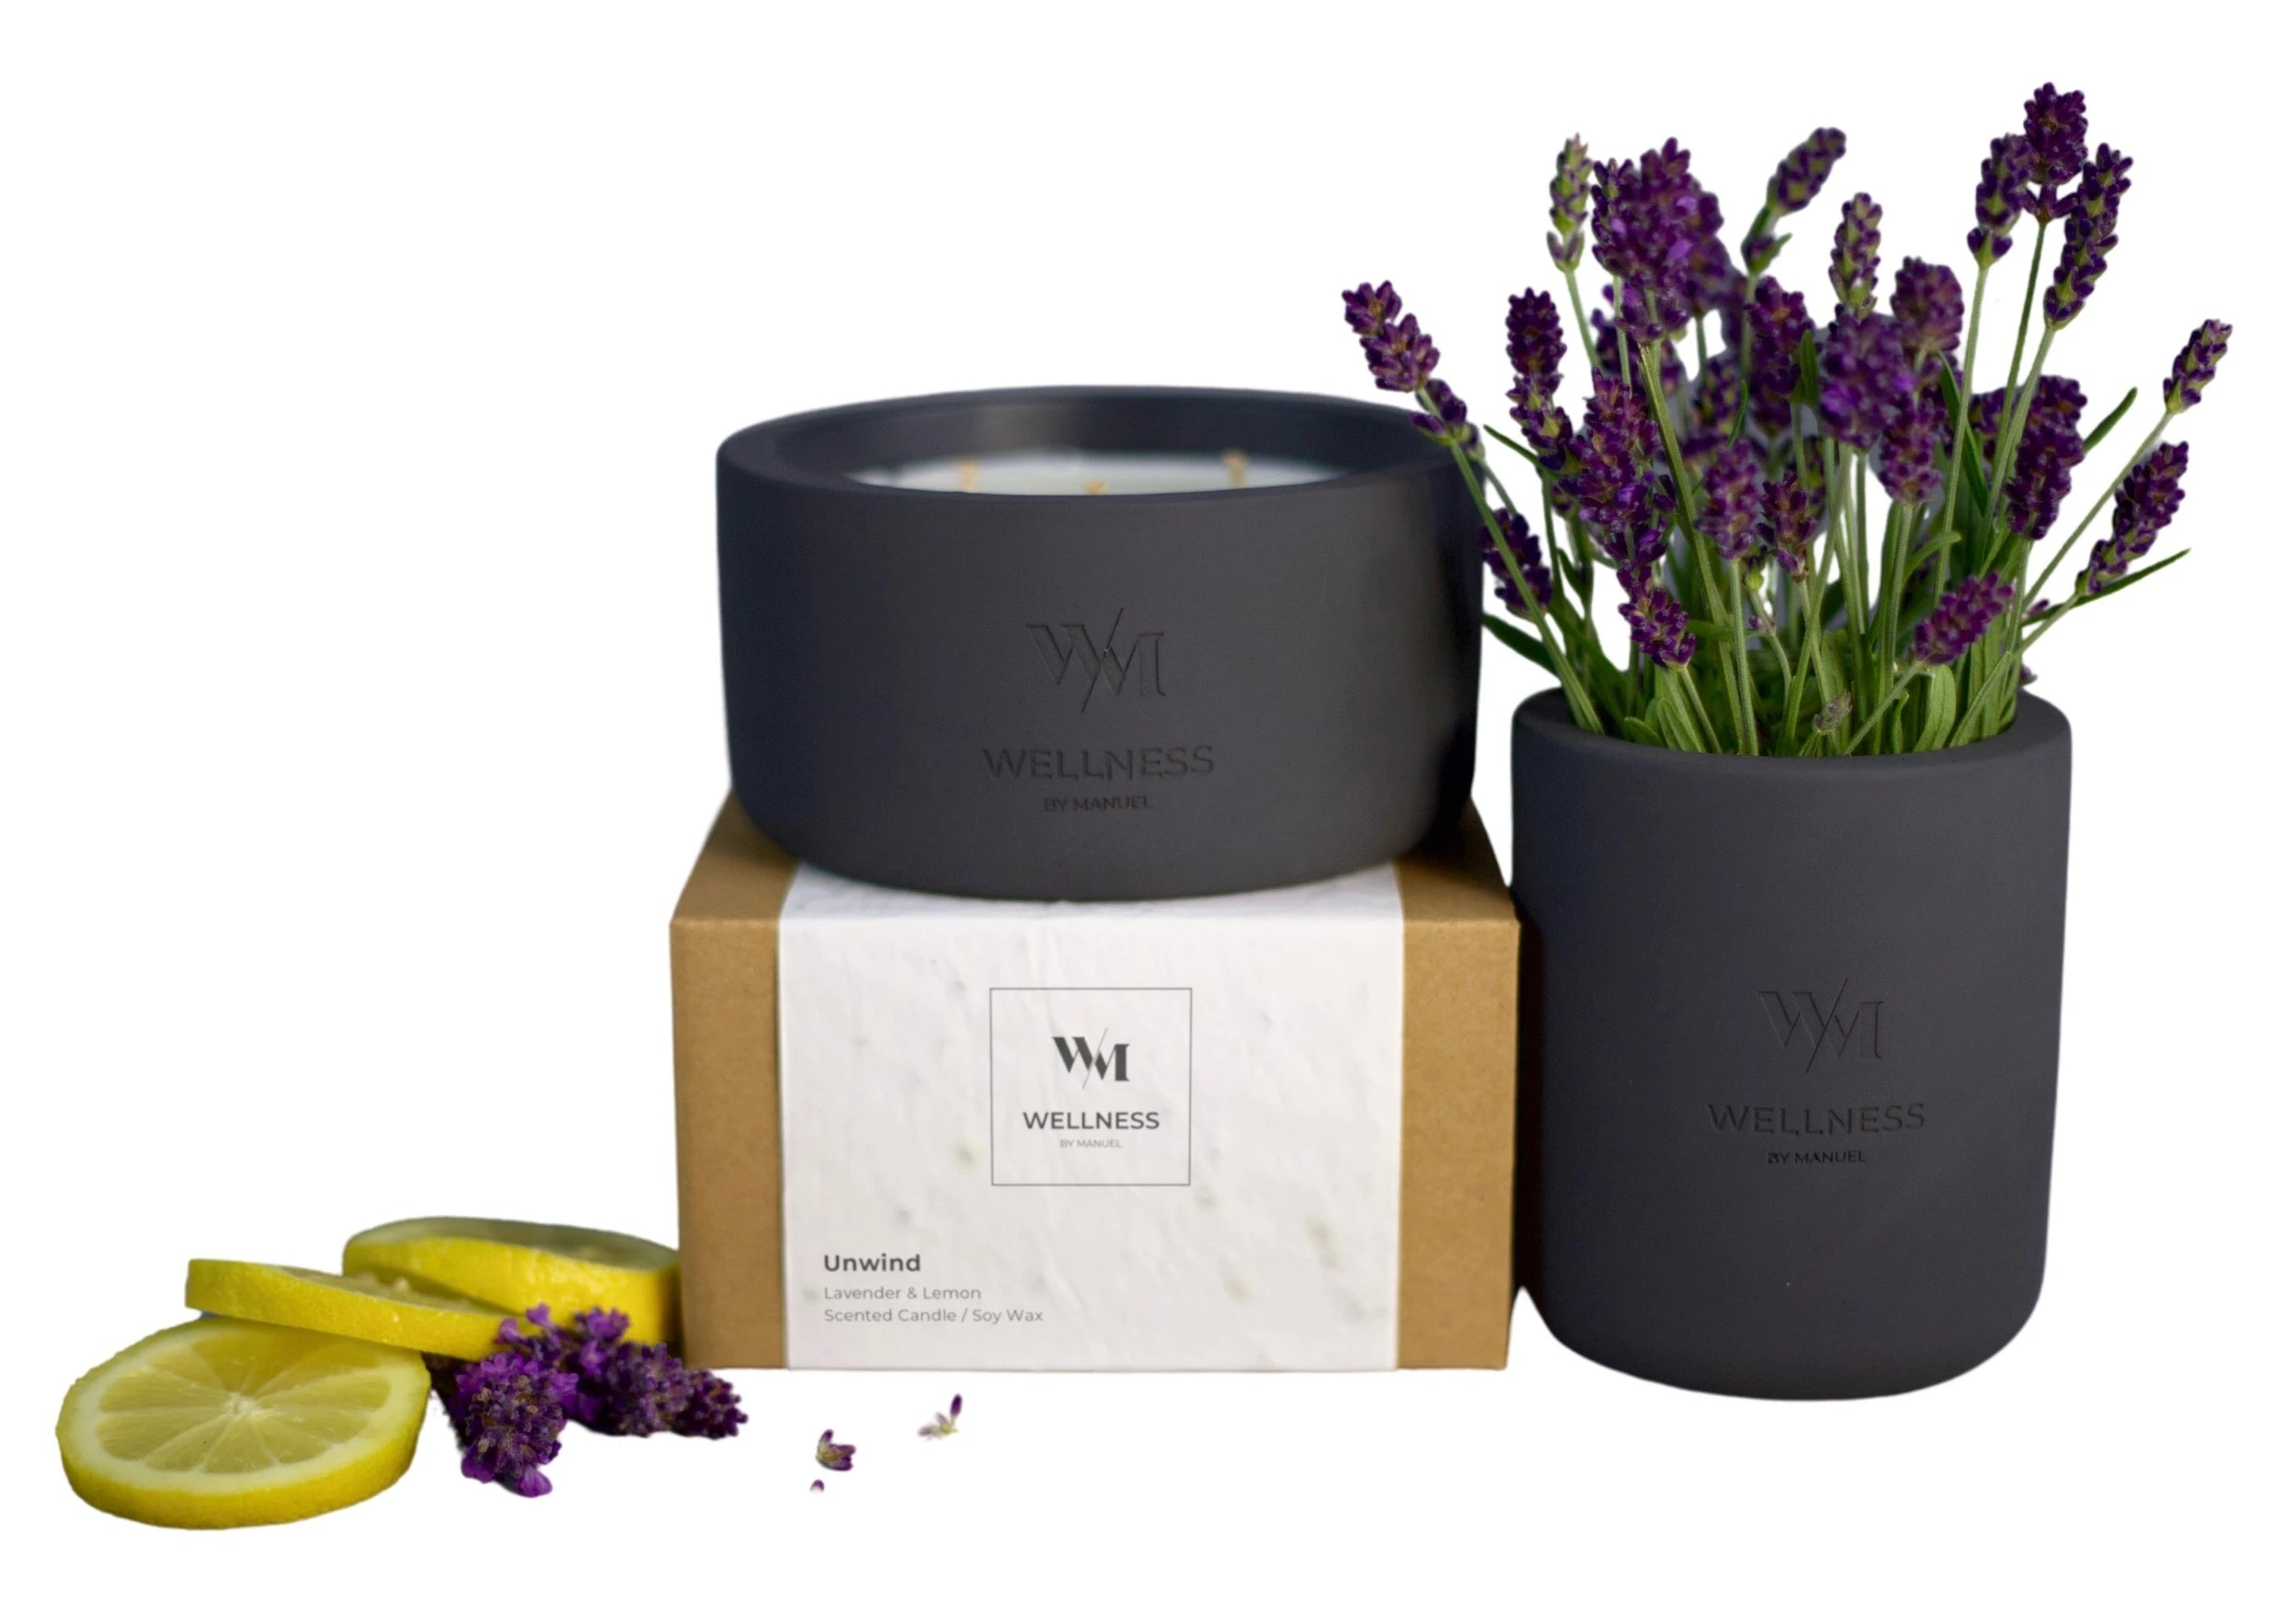 soy natural wax candle flower recycle re-use upcycle essential oils wild flowers seed paper